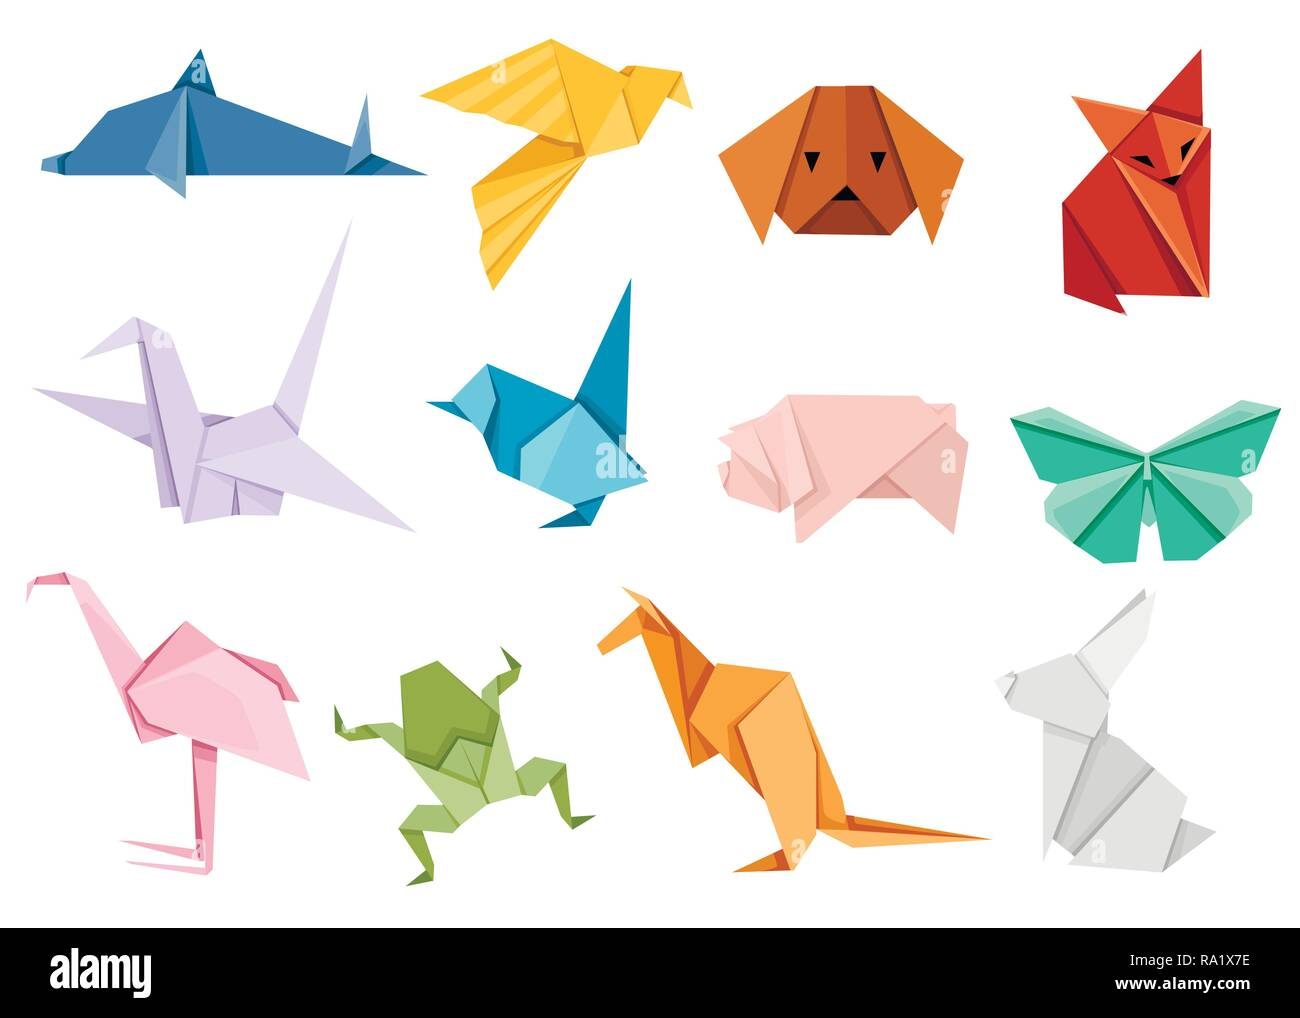 Origami Free Vector Art - (24,935 Free Downloads) | 1018x1300